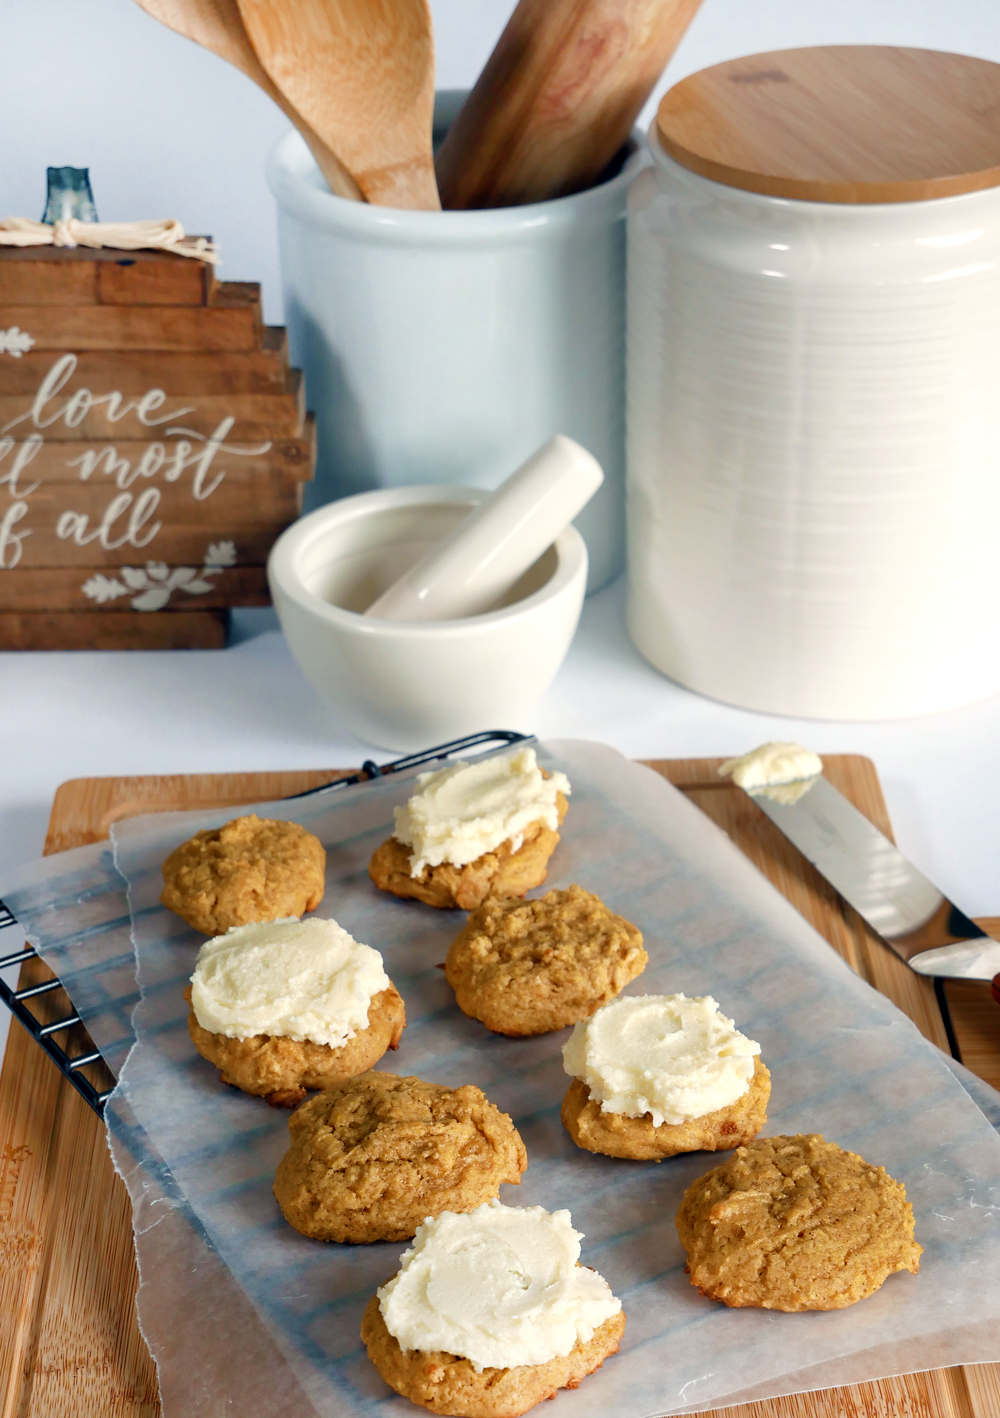 These soft-baked pumpkin cookies have the light, rich texture of butter cake & maple cinnamon cream cheese frosting for perfect fall flavor.